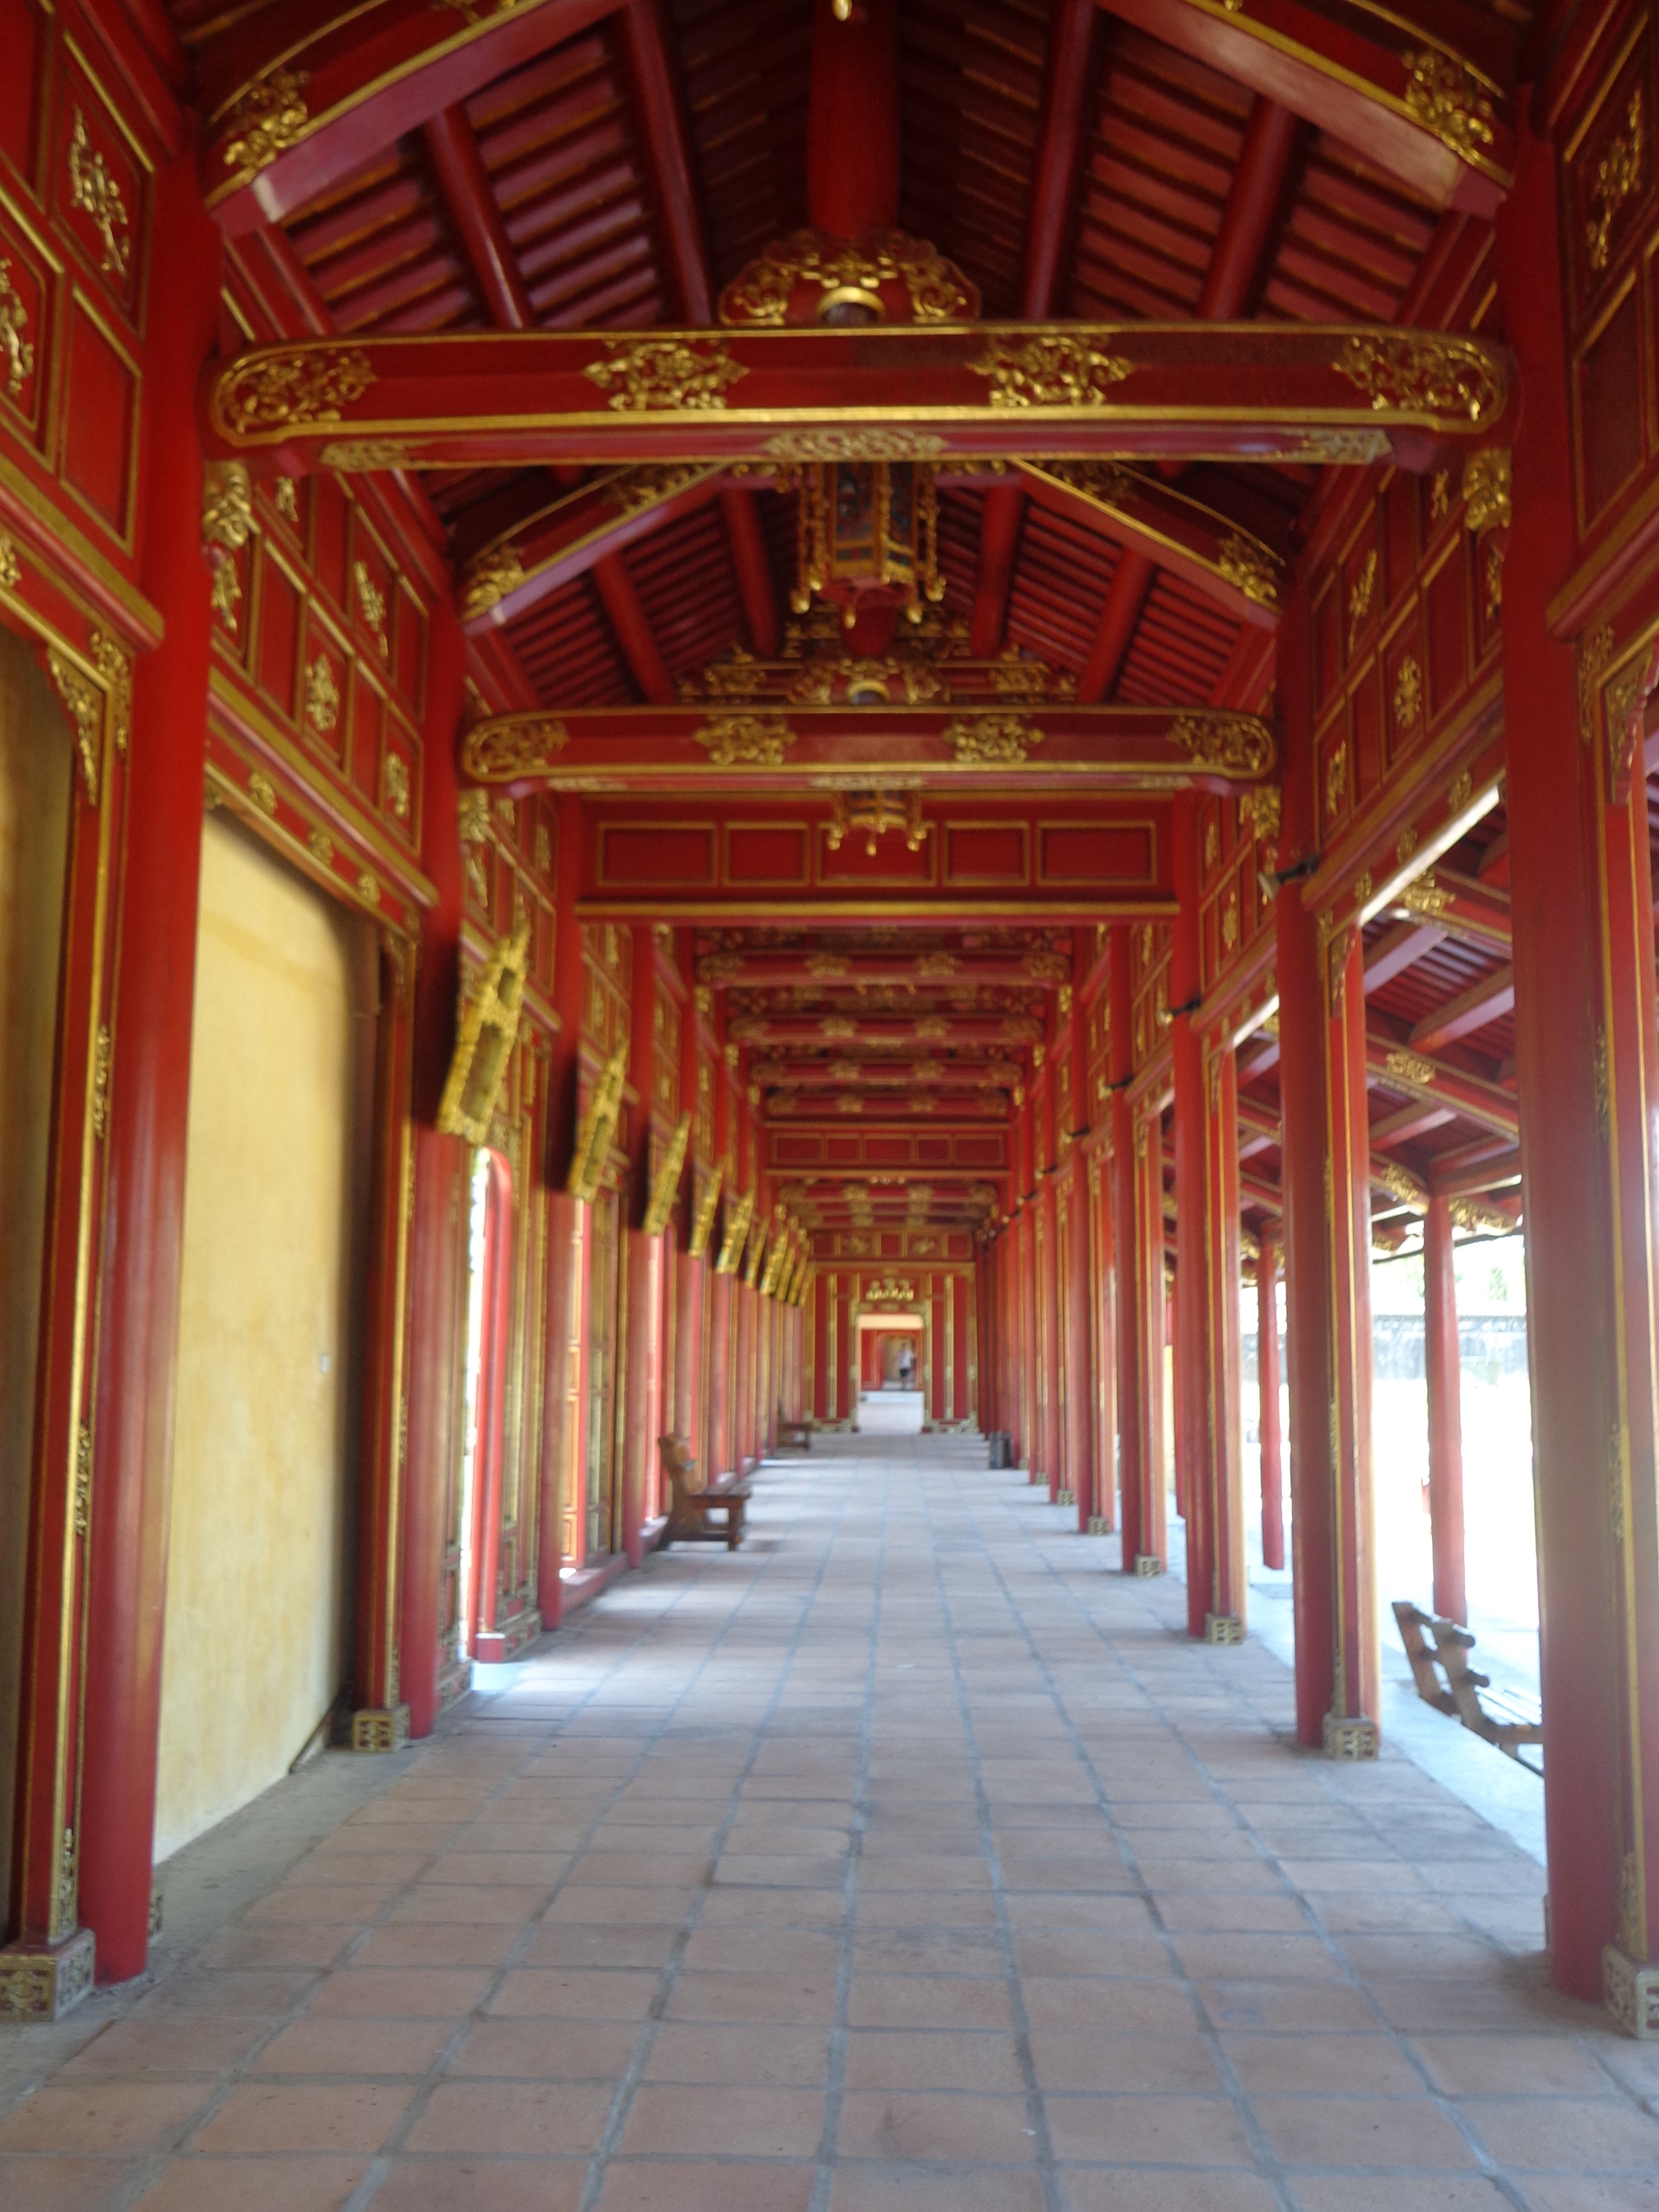 The corridors joining various parts of the palace , temples and shrines are decorated in red and gold.